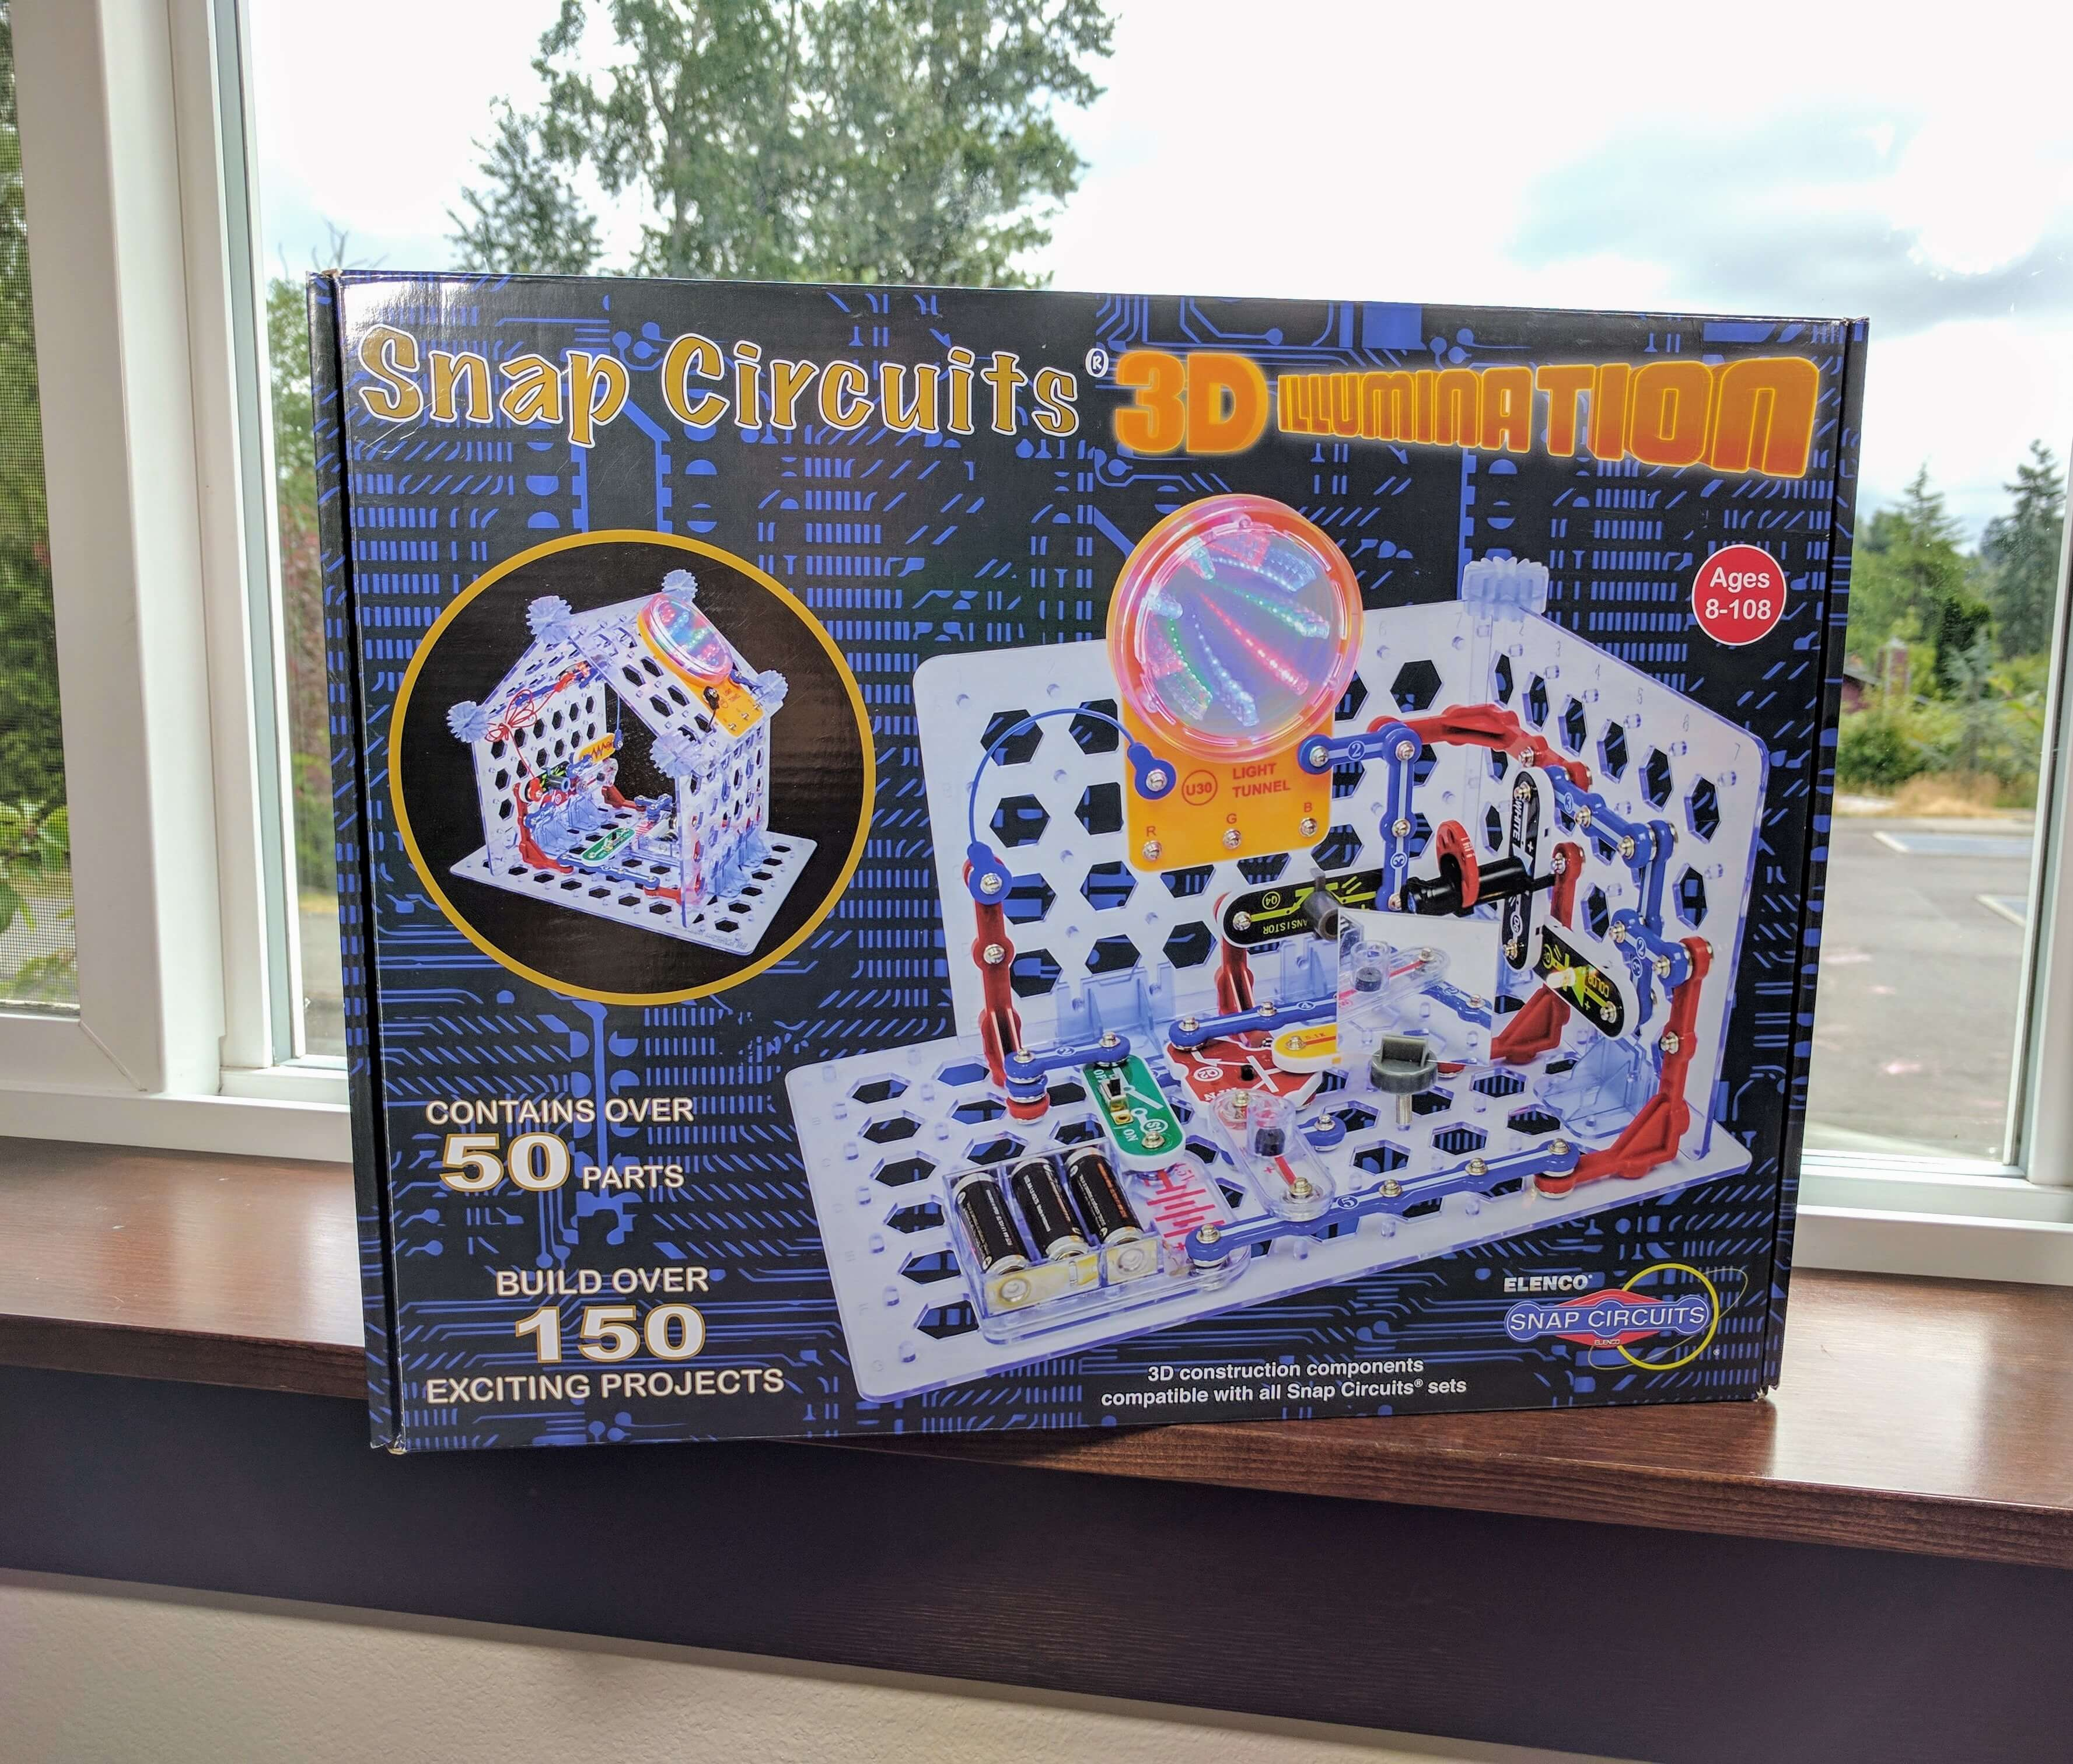 Snap Circuits 3d Illumination Review Electronics Kit Bliss Learn Circuit Extreme Richly